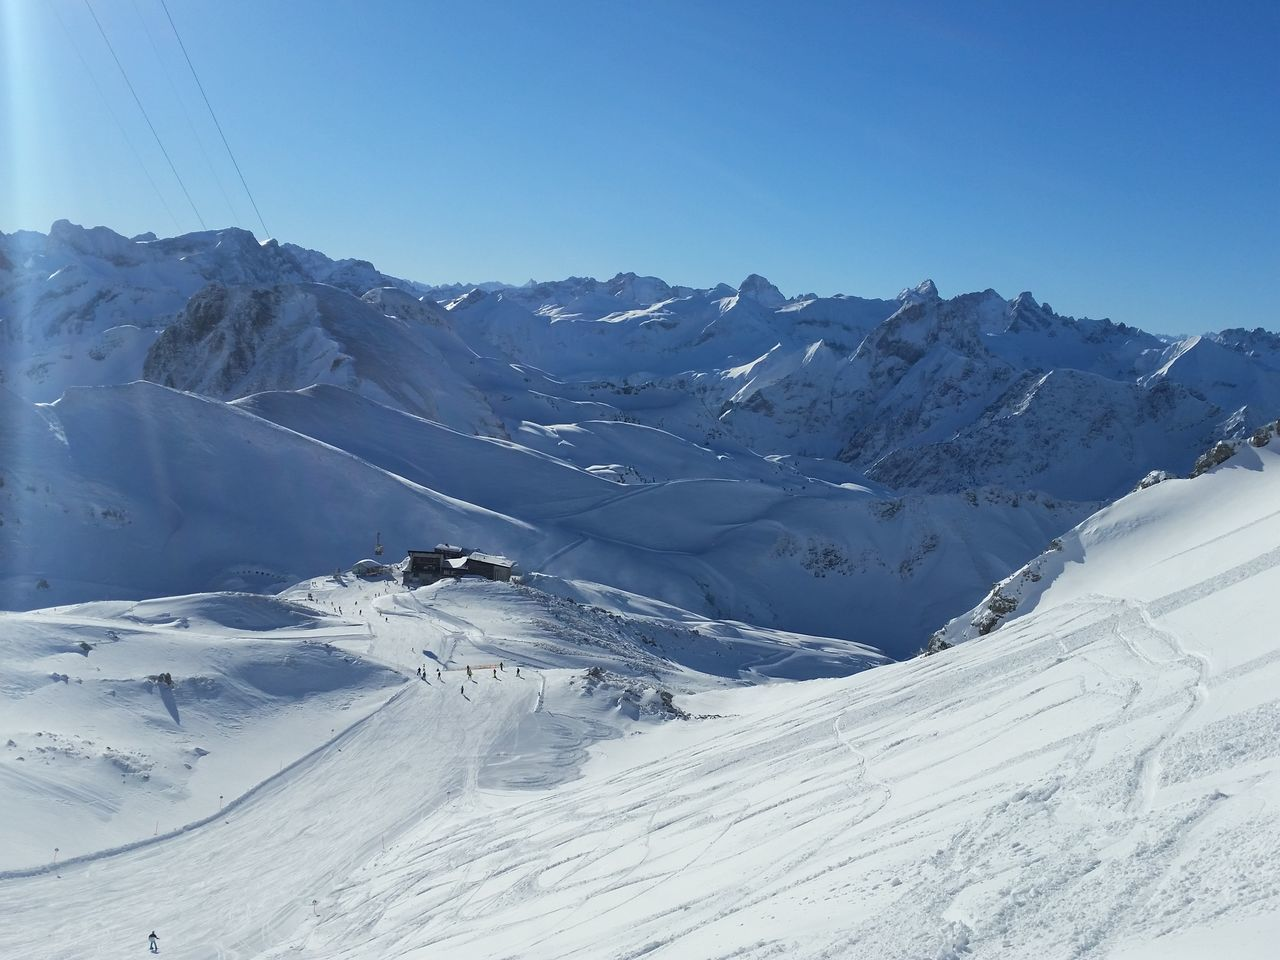 Beauty In Nature Cold Temperature Day Landscape Mountain Nebelhorn Oberstdorf Allgäu Outdoors Skiing Sky Snow Winter